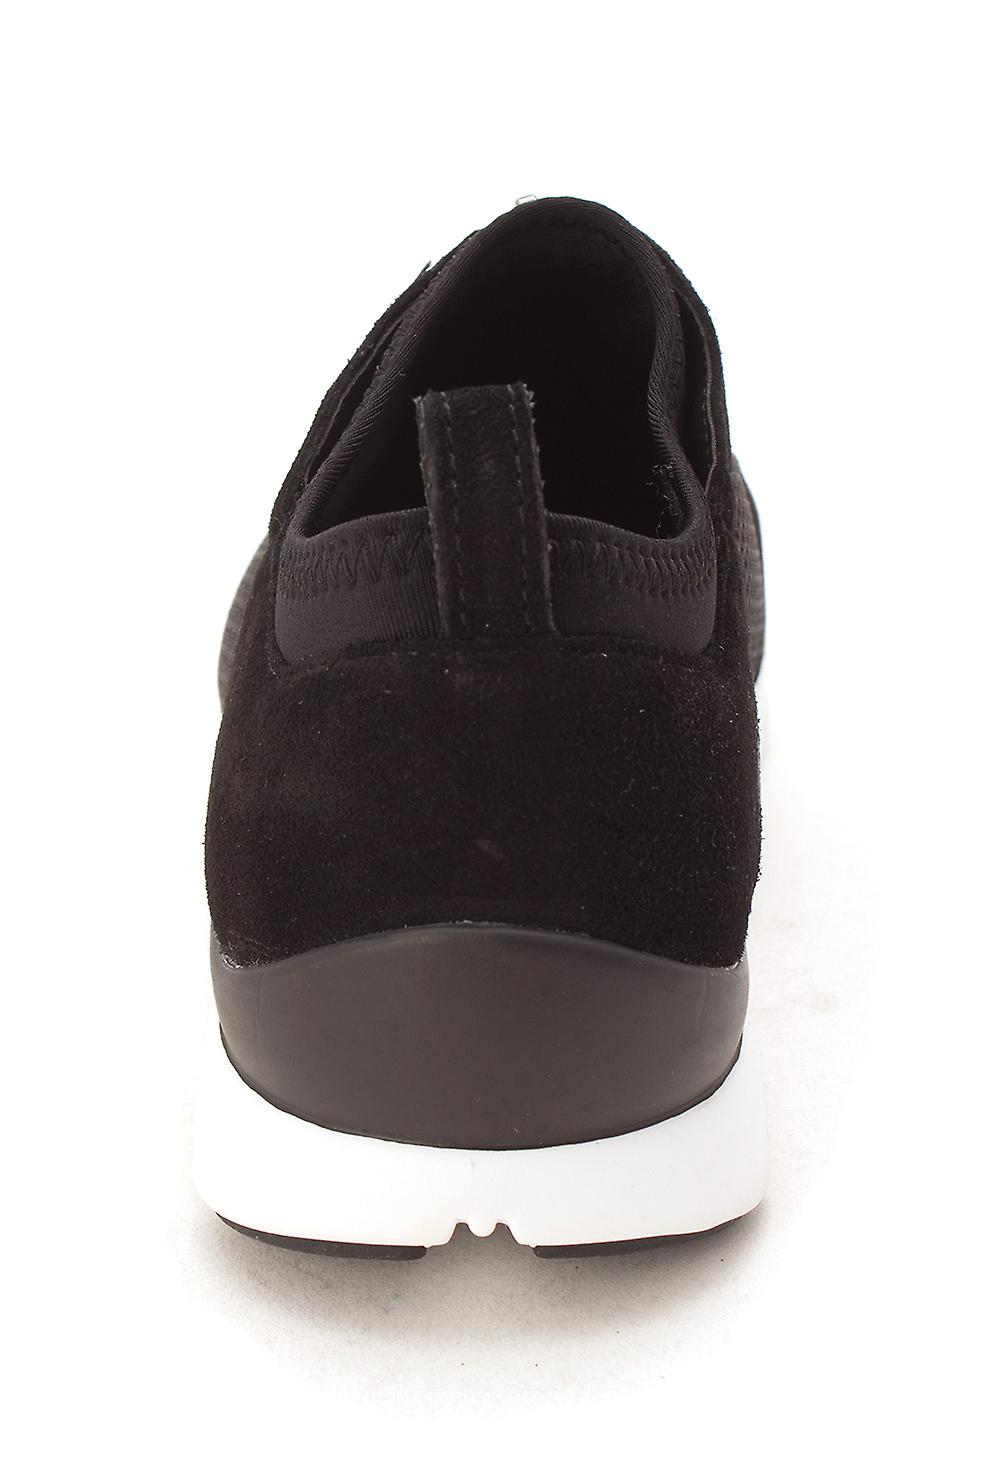 Ros Hommerson Womens fly Low Top Zipper Fashion Sneakers BgKgP